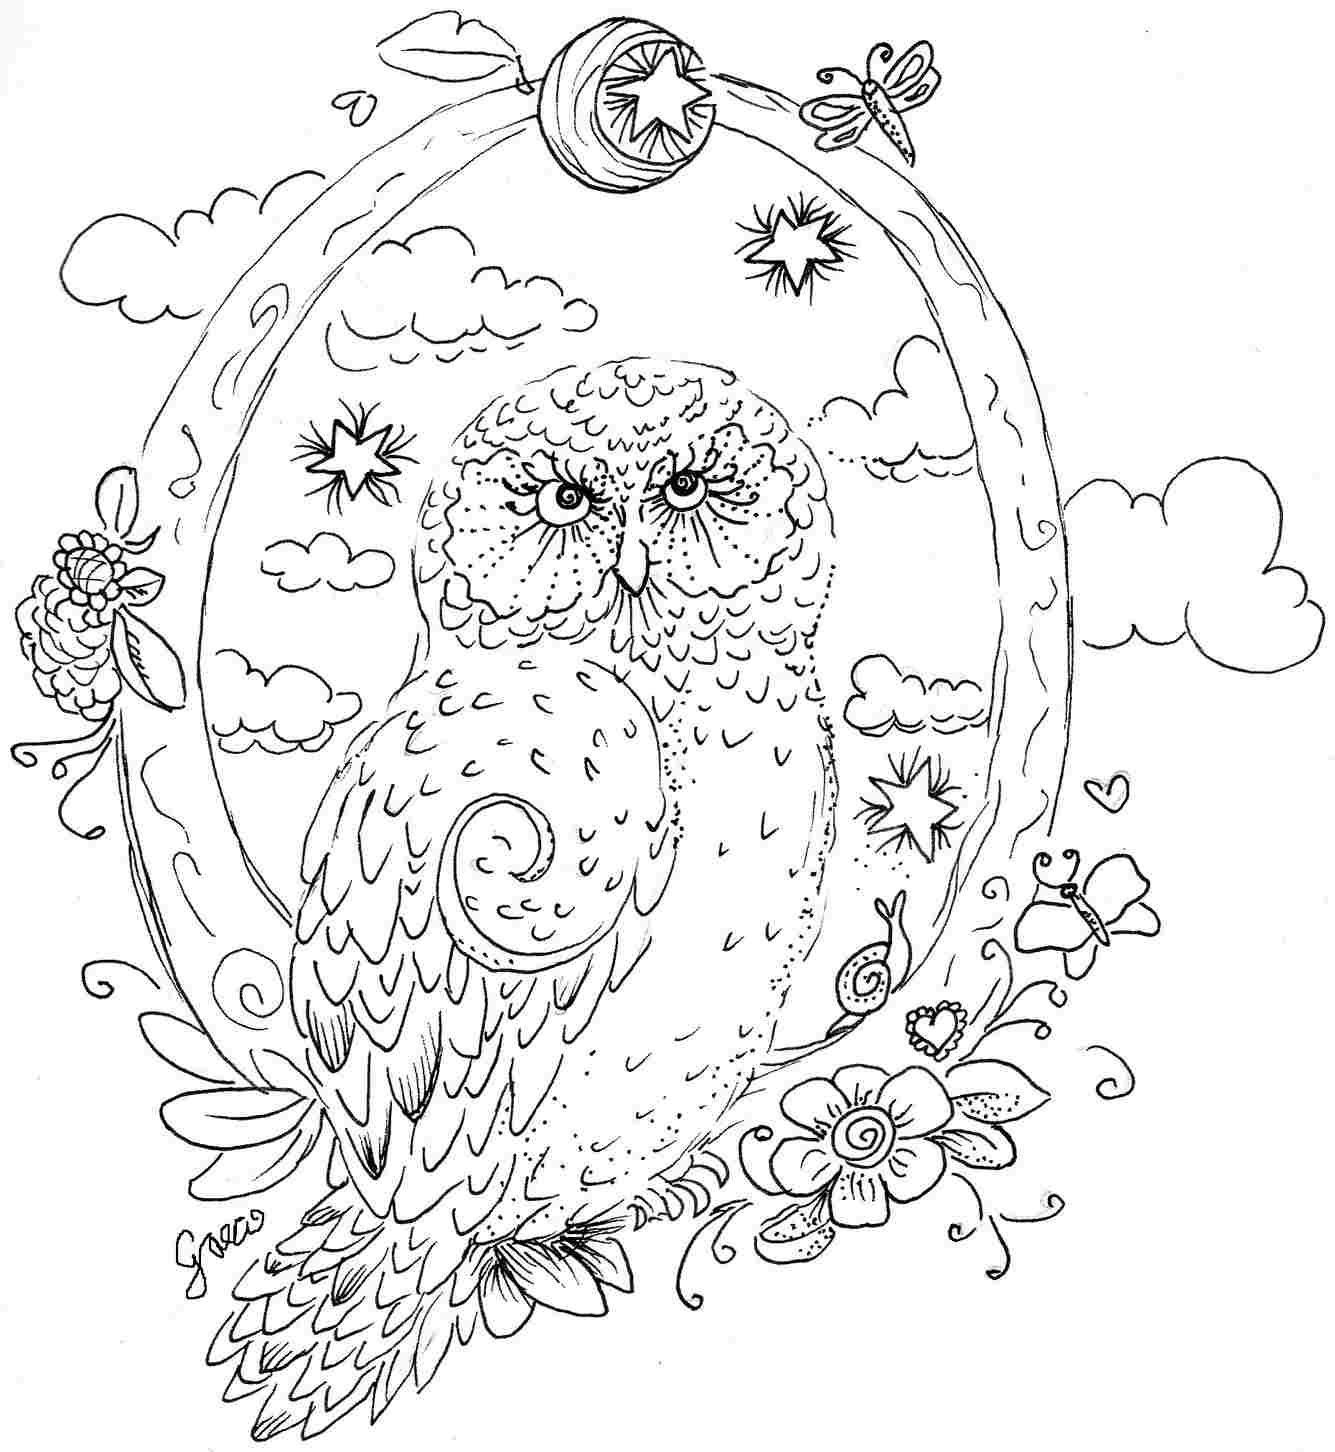 advance cartoon coloring pages - photo#34